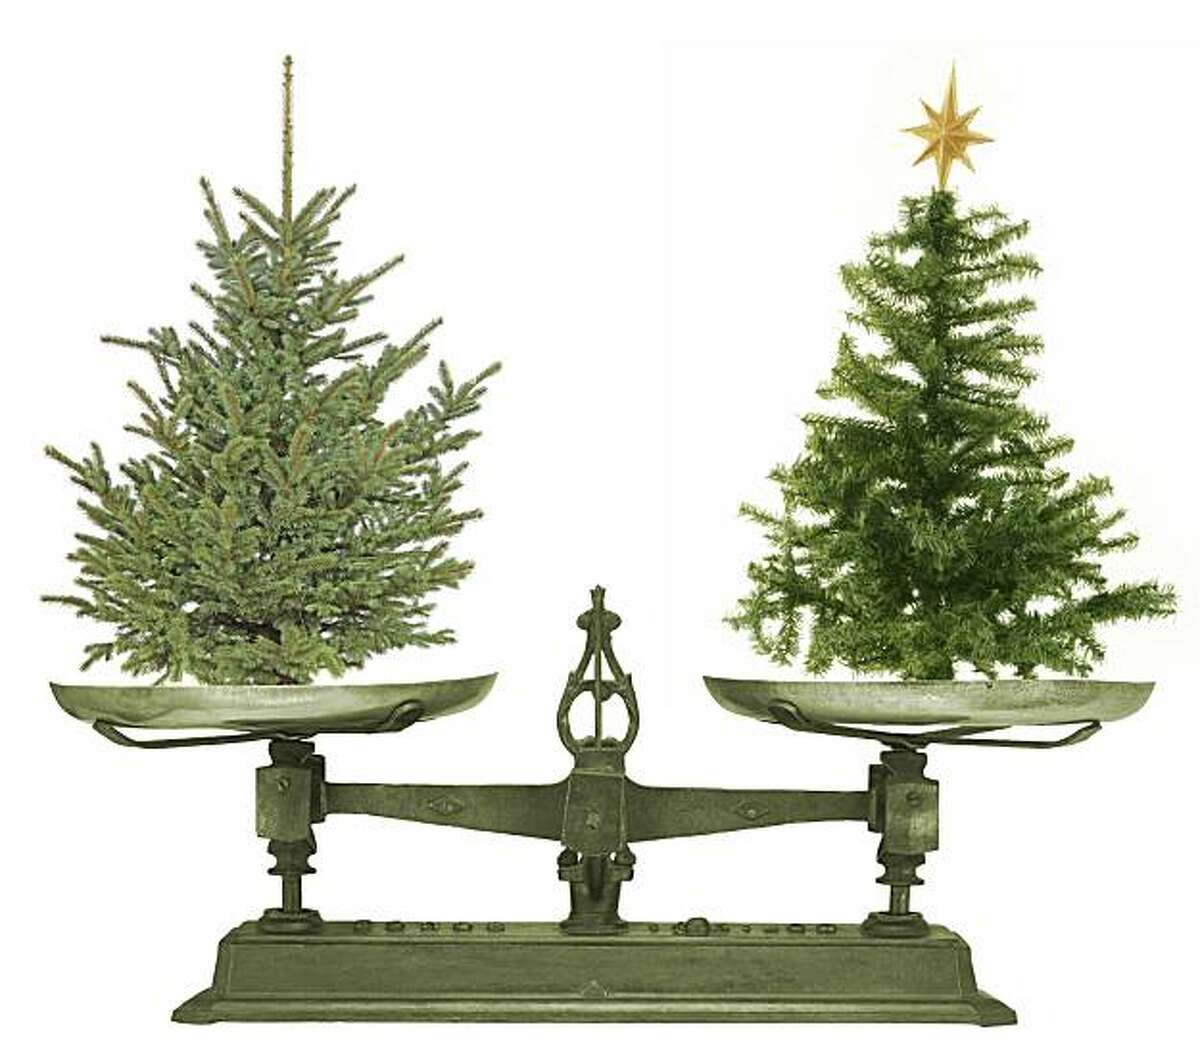 The Christmas tree greenscale dilemma: Real or fake?